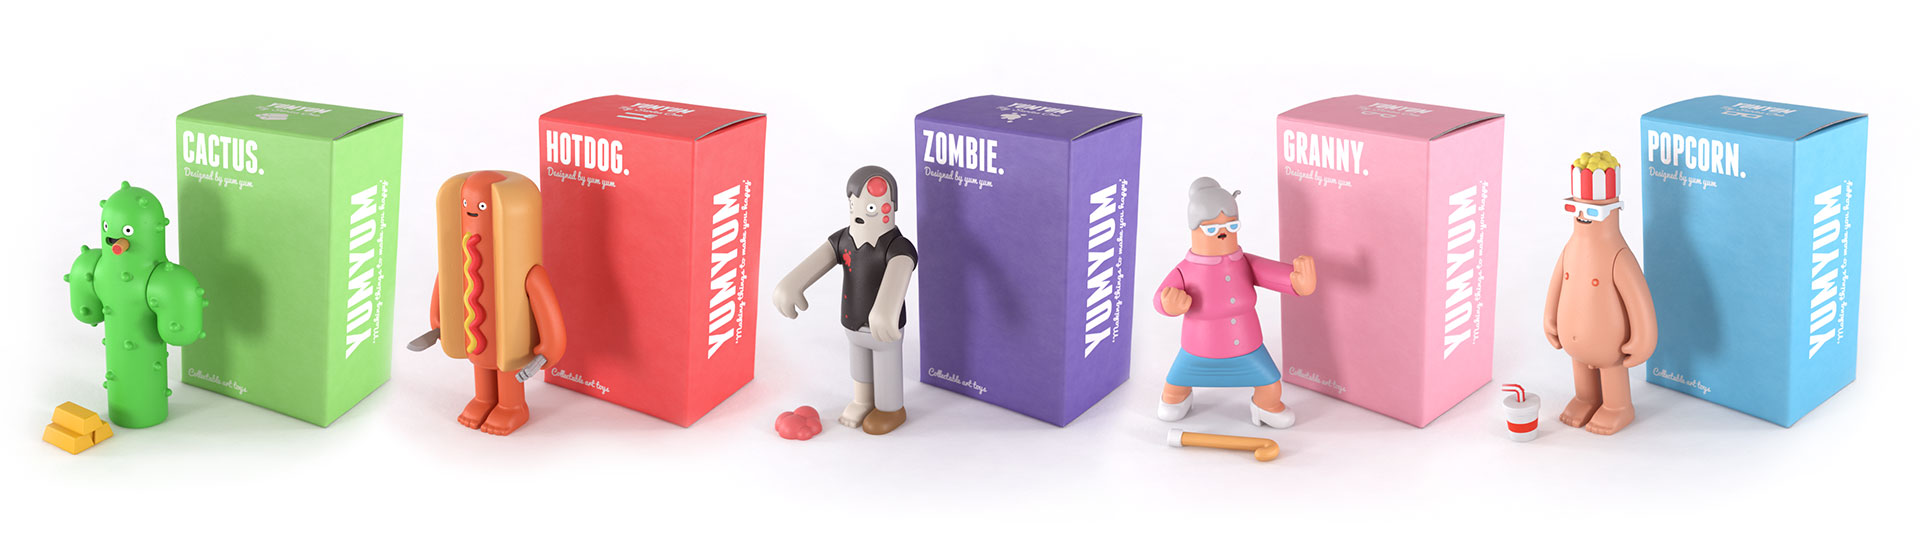 Yum Yum toy designs with packaging line up